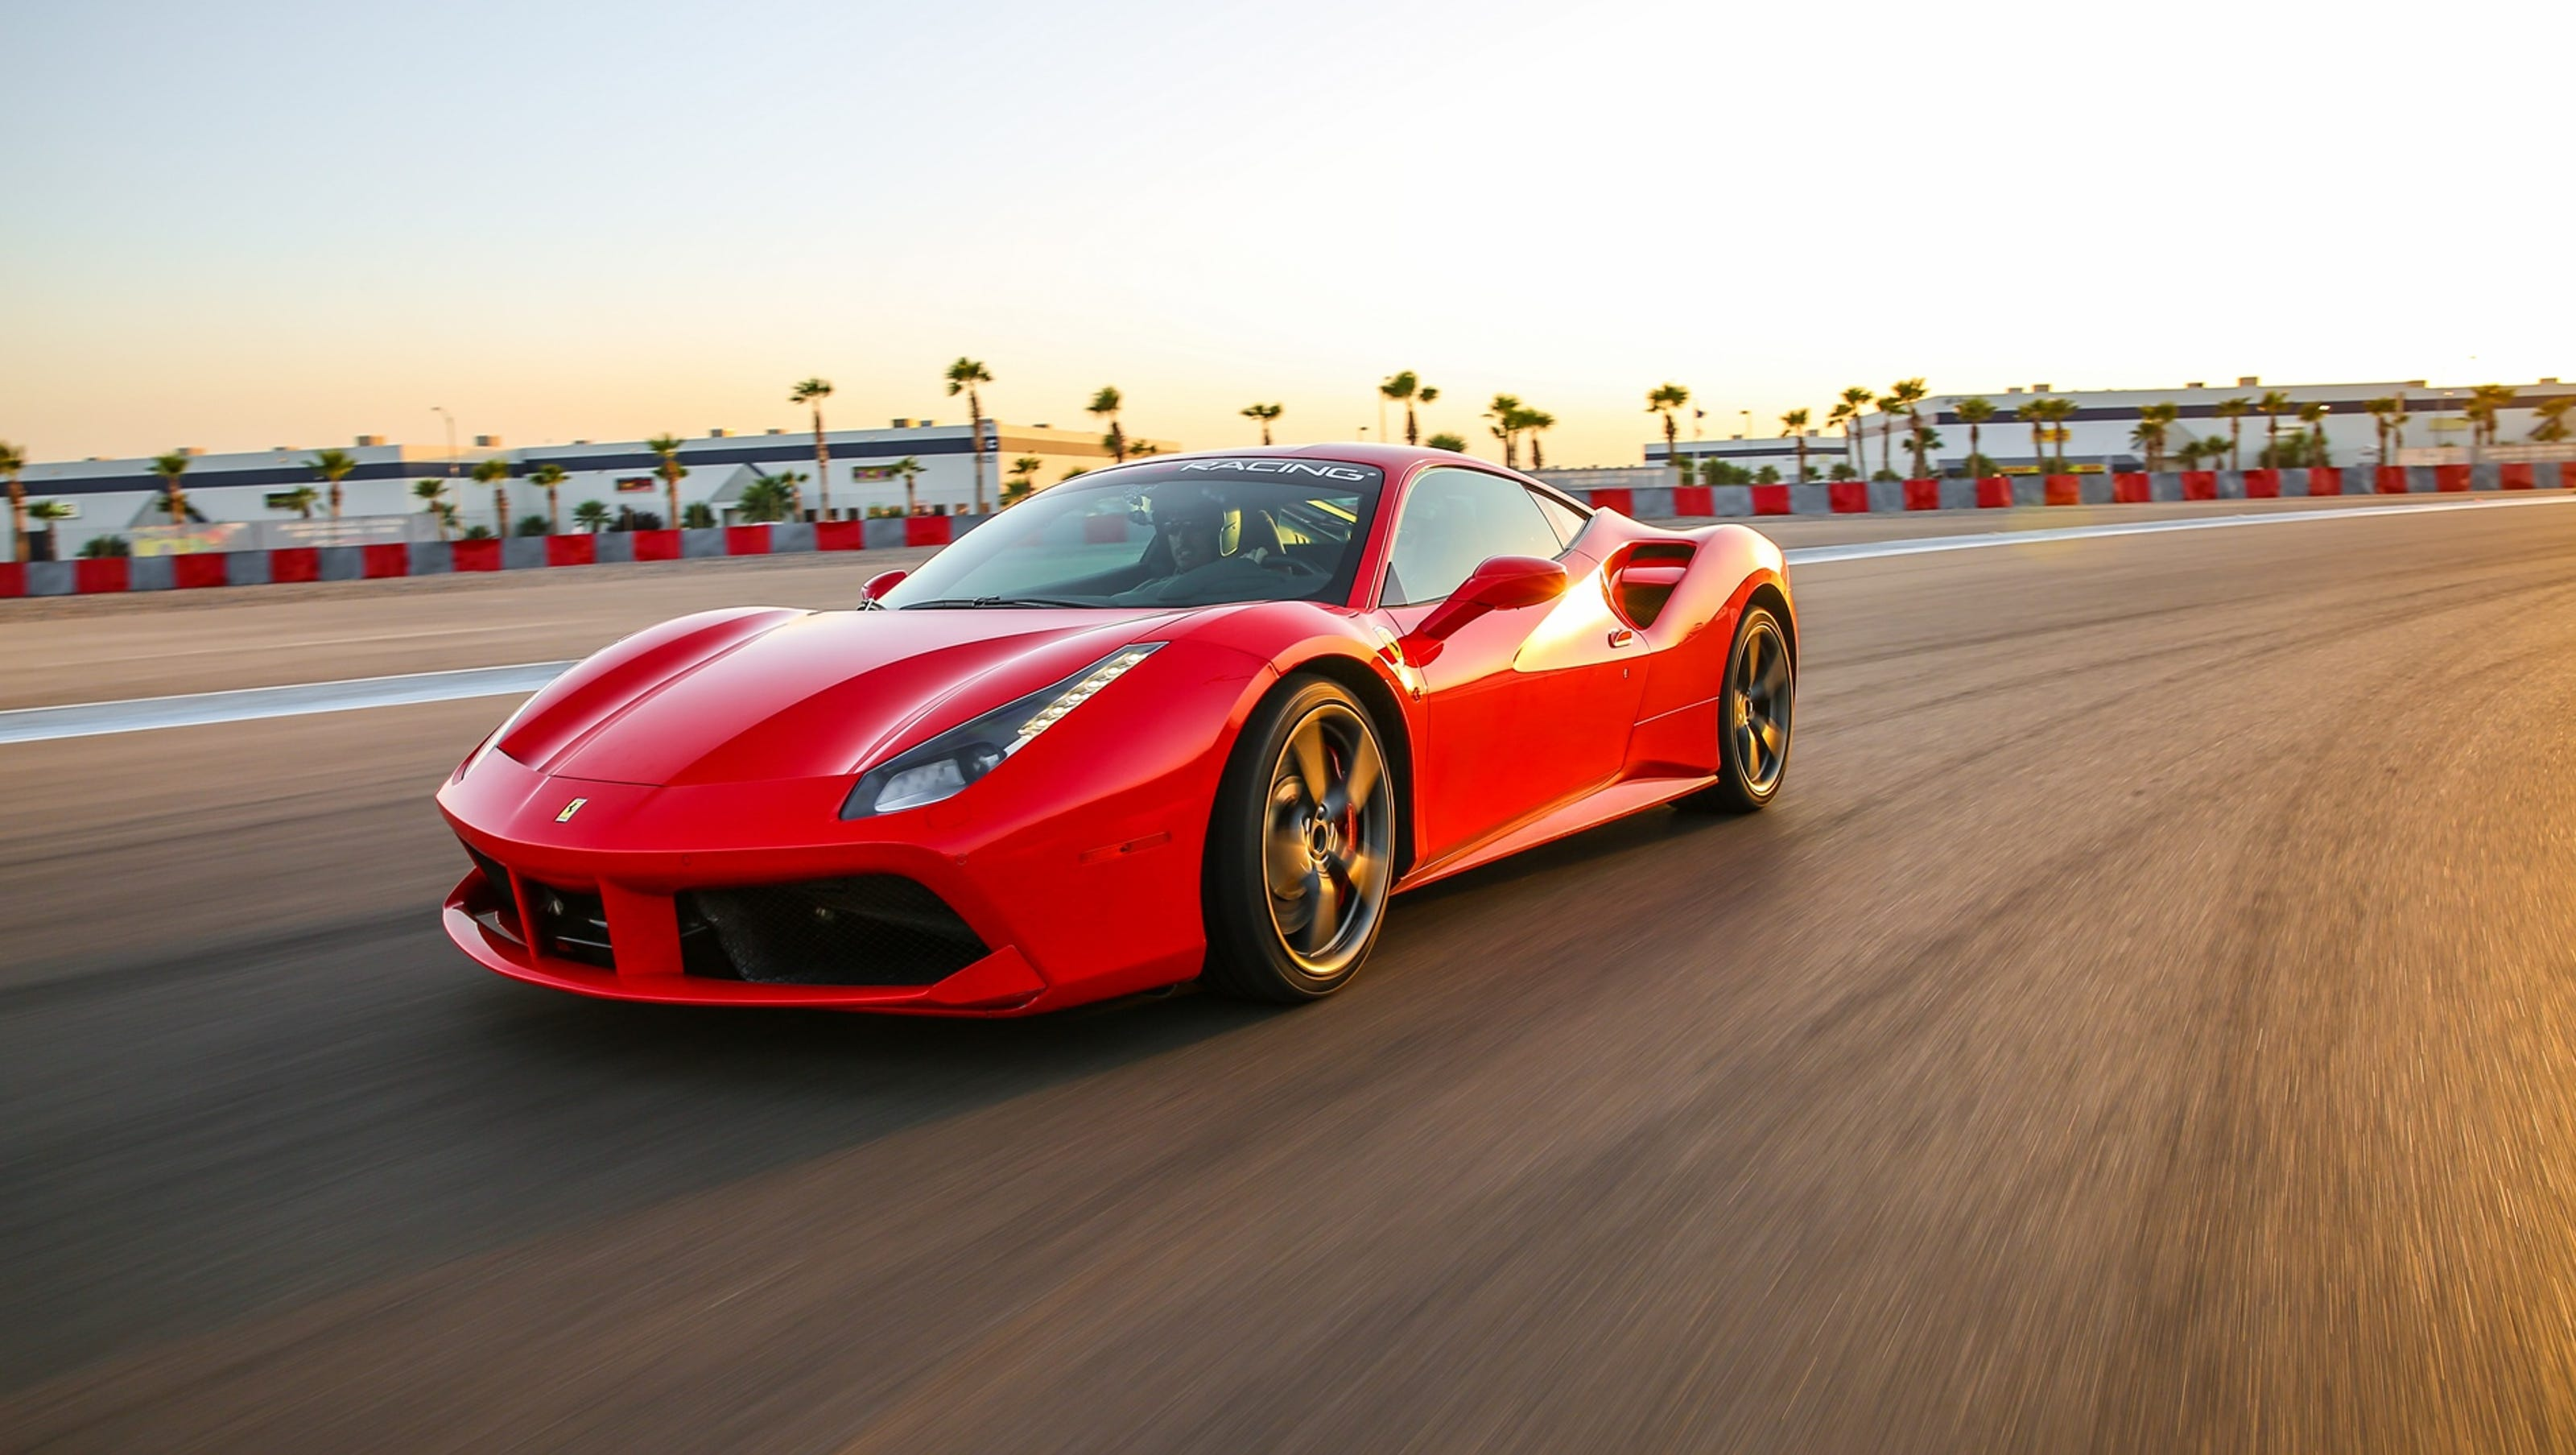 10 Great Racing Schools And High Speed Experiences